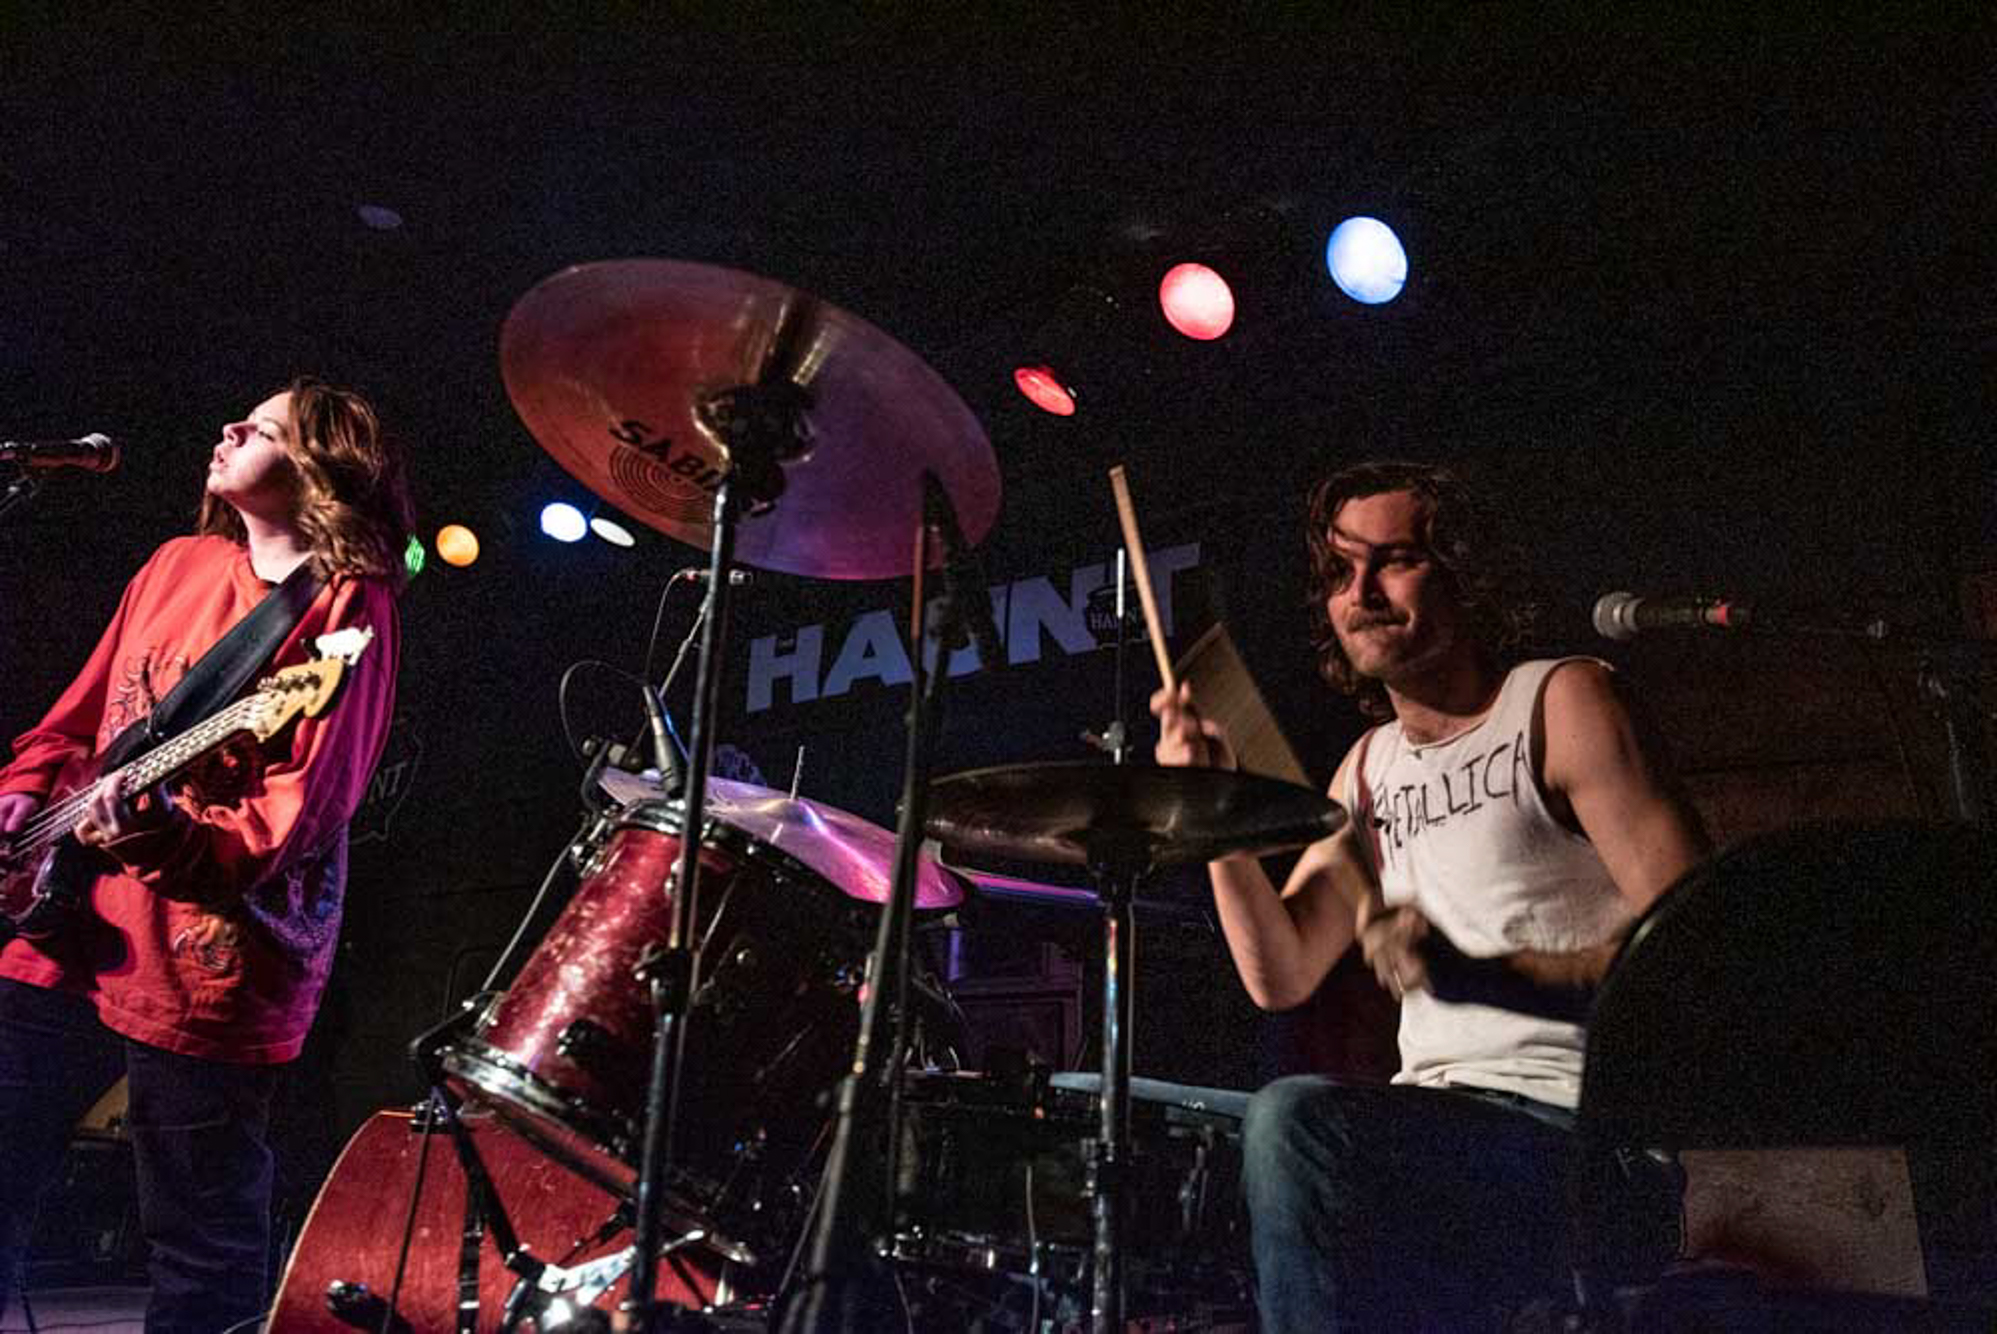 GALLERY: SEGO at The Haunt in Ithaca, NY